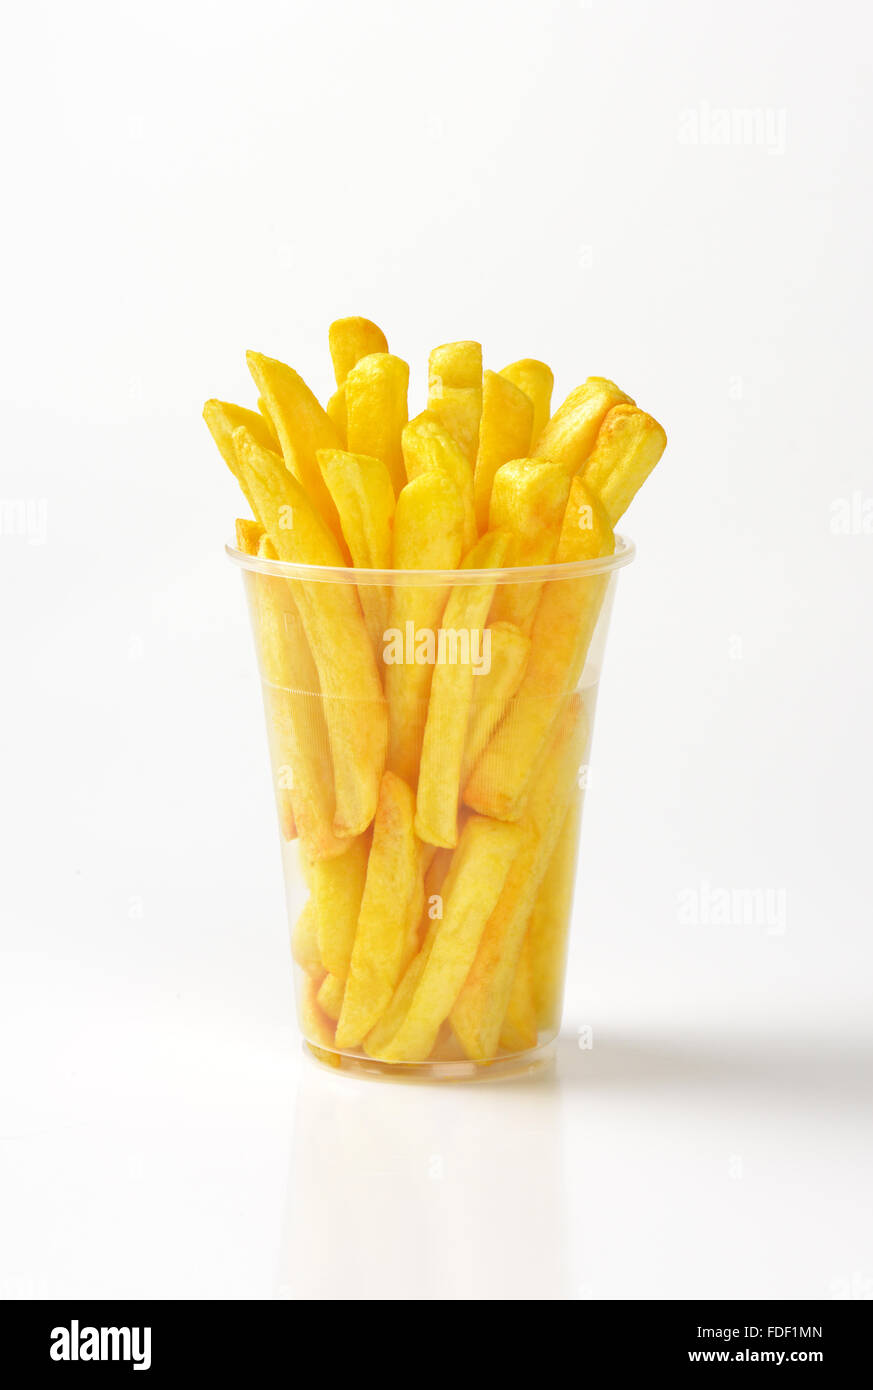 plastic cup of french fries on white background - Stock Image